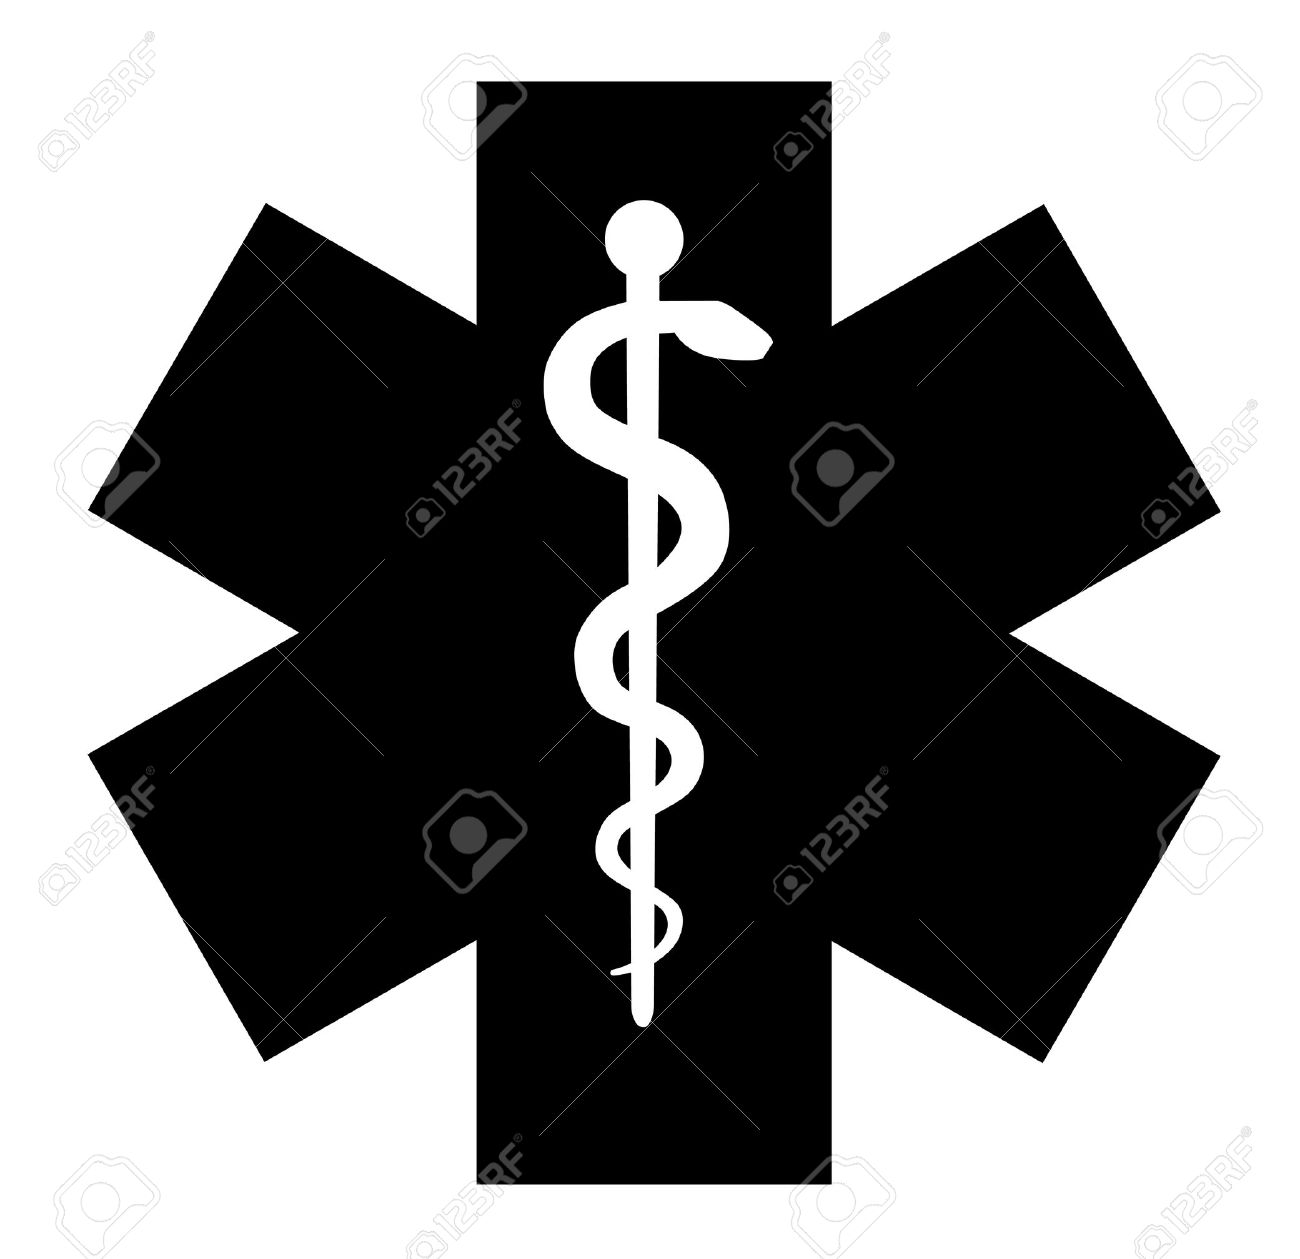 Medical symbol of the emergency icon vector eps 10 royalty free medical symbol of the emergency icon vector eps 10 stock vector 22725610 buycottarizona Image collections